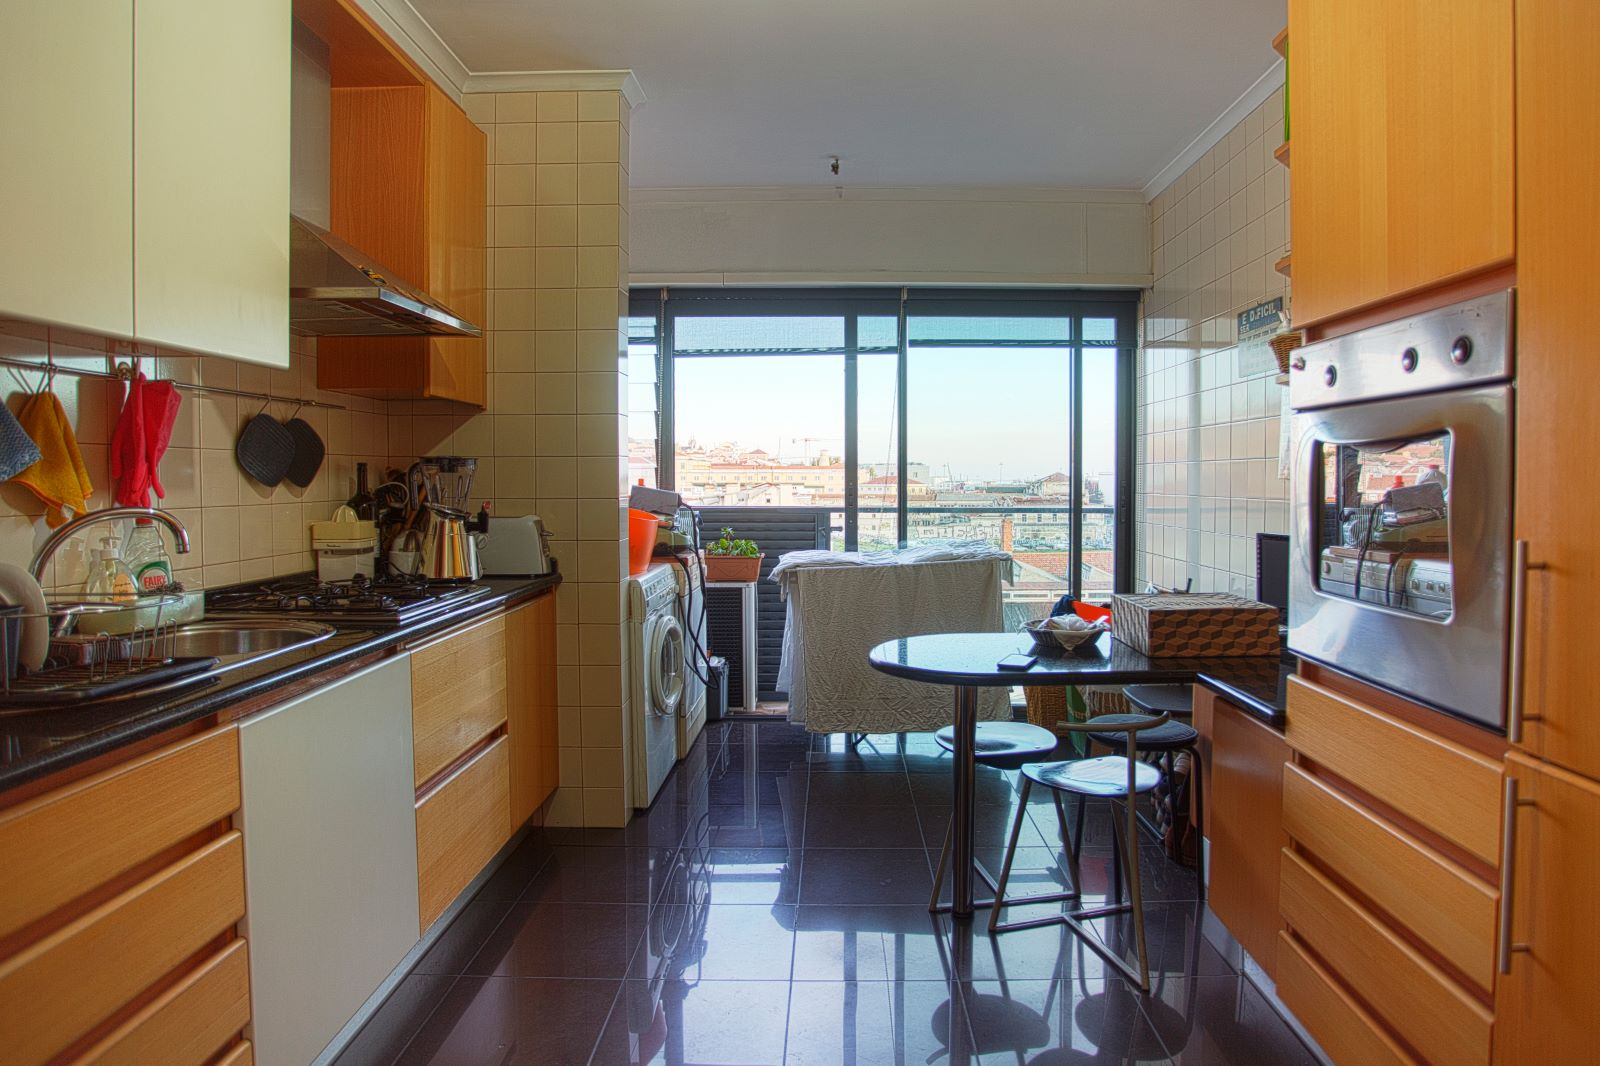 2 -BEDROOM APARTMENT WITH RIVER VIEW AND GARAGE IN ALCANTARA